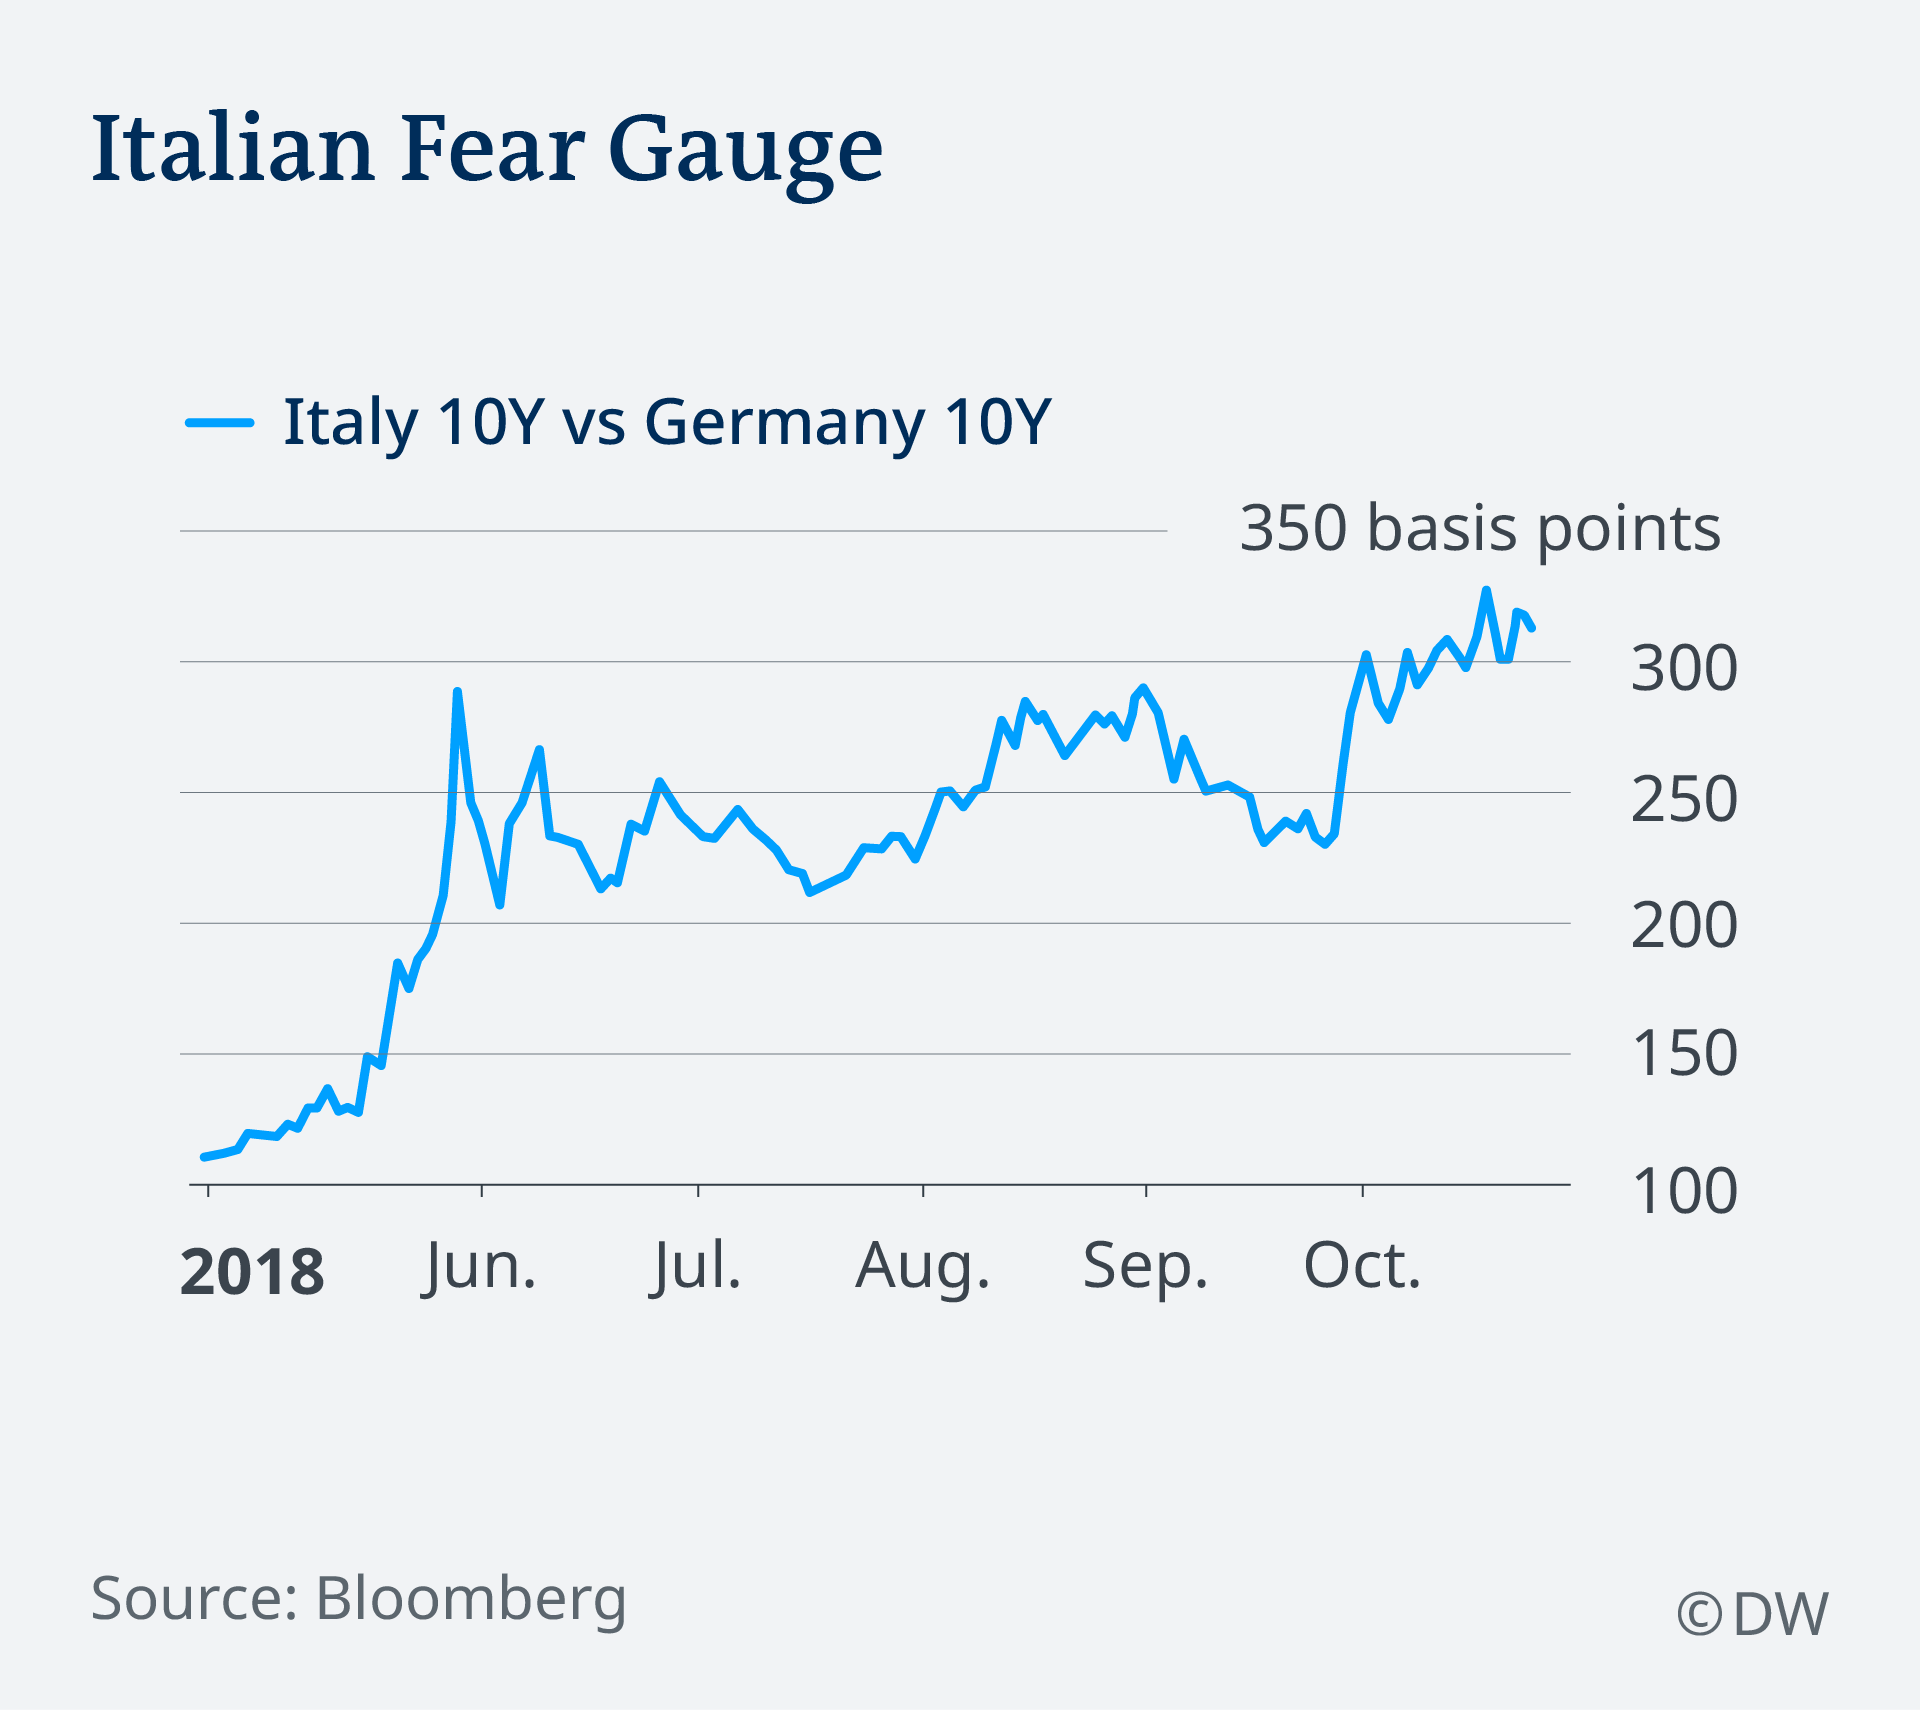 The yield on the 10-year Italian government bond hit its highest level this week since May